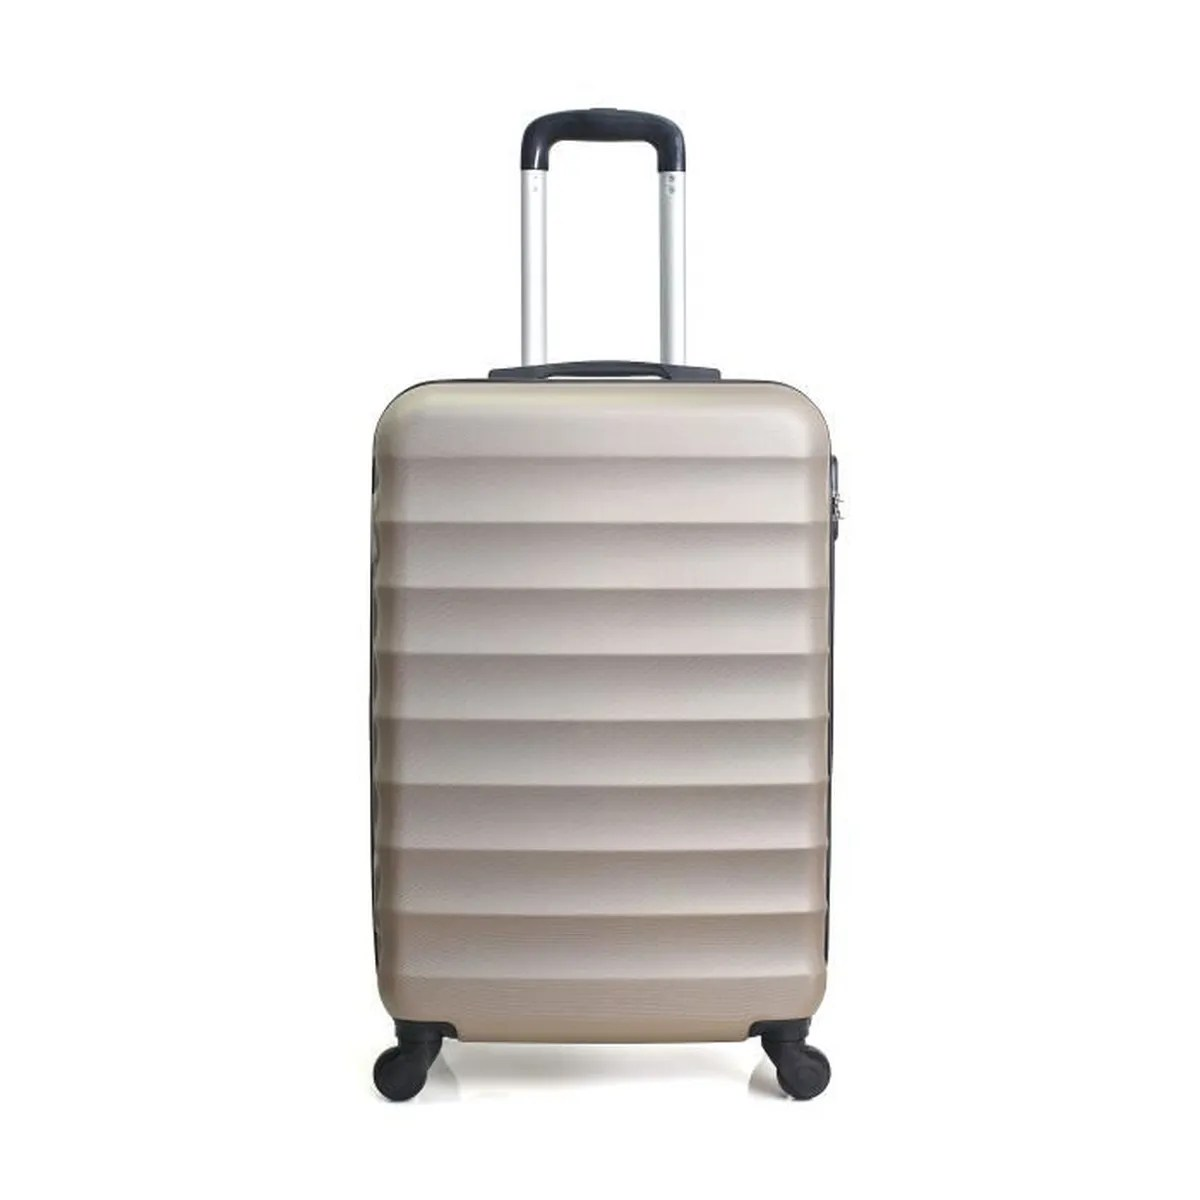 Valise Cabine Abs Coque Rigide 50cm Jakarta Champagne cd5be72b39f0